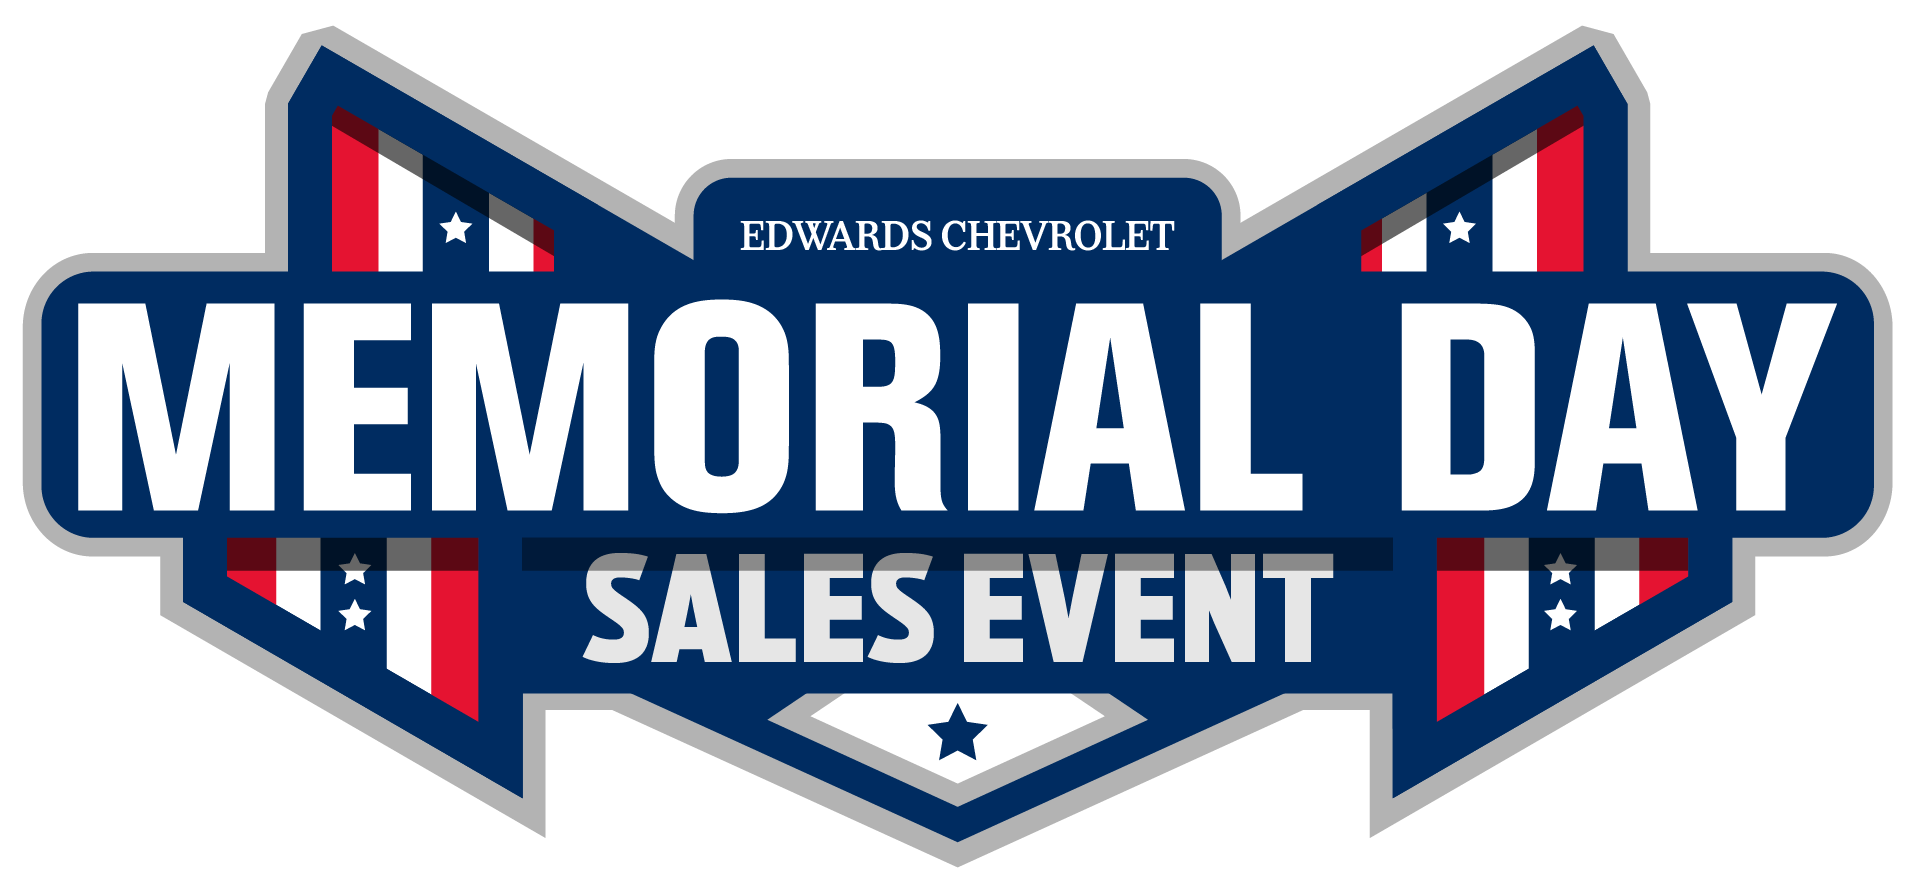 Mcfarland Ford Memorial Day Sales Event